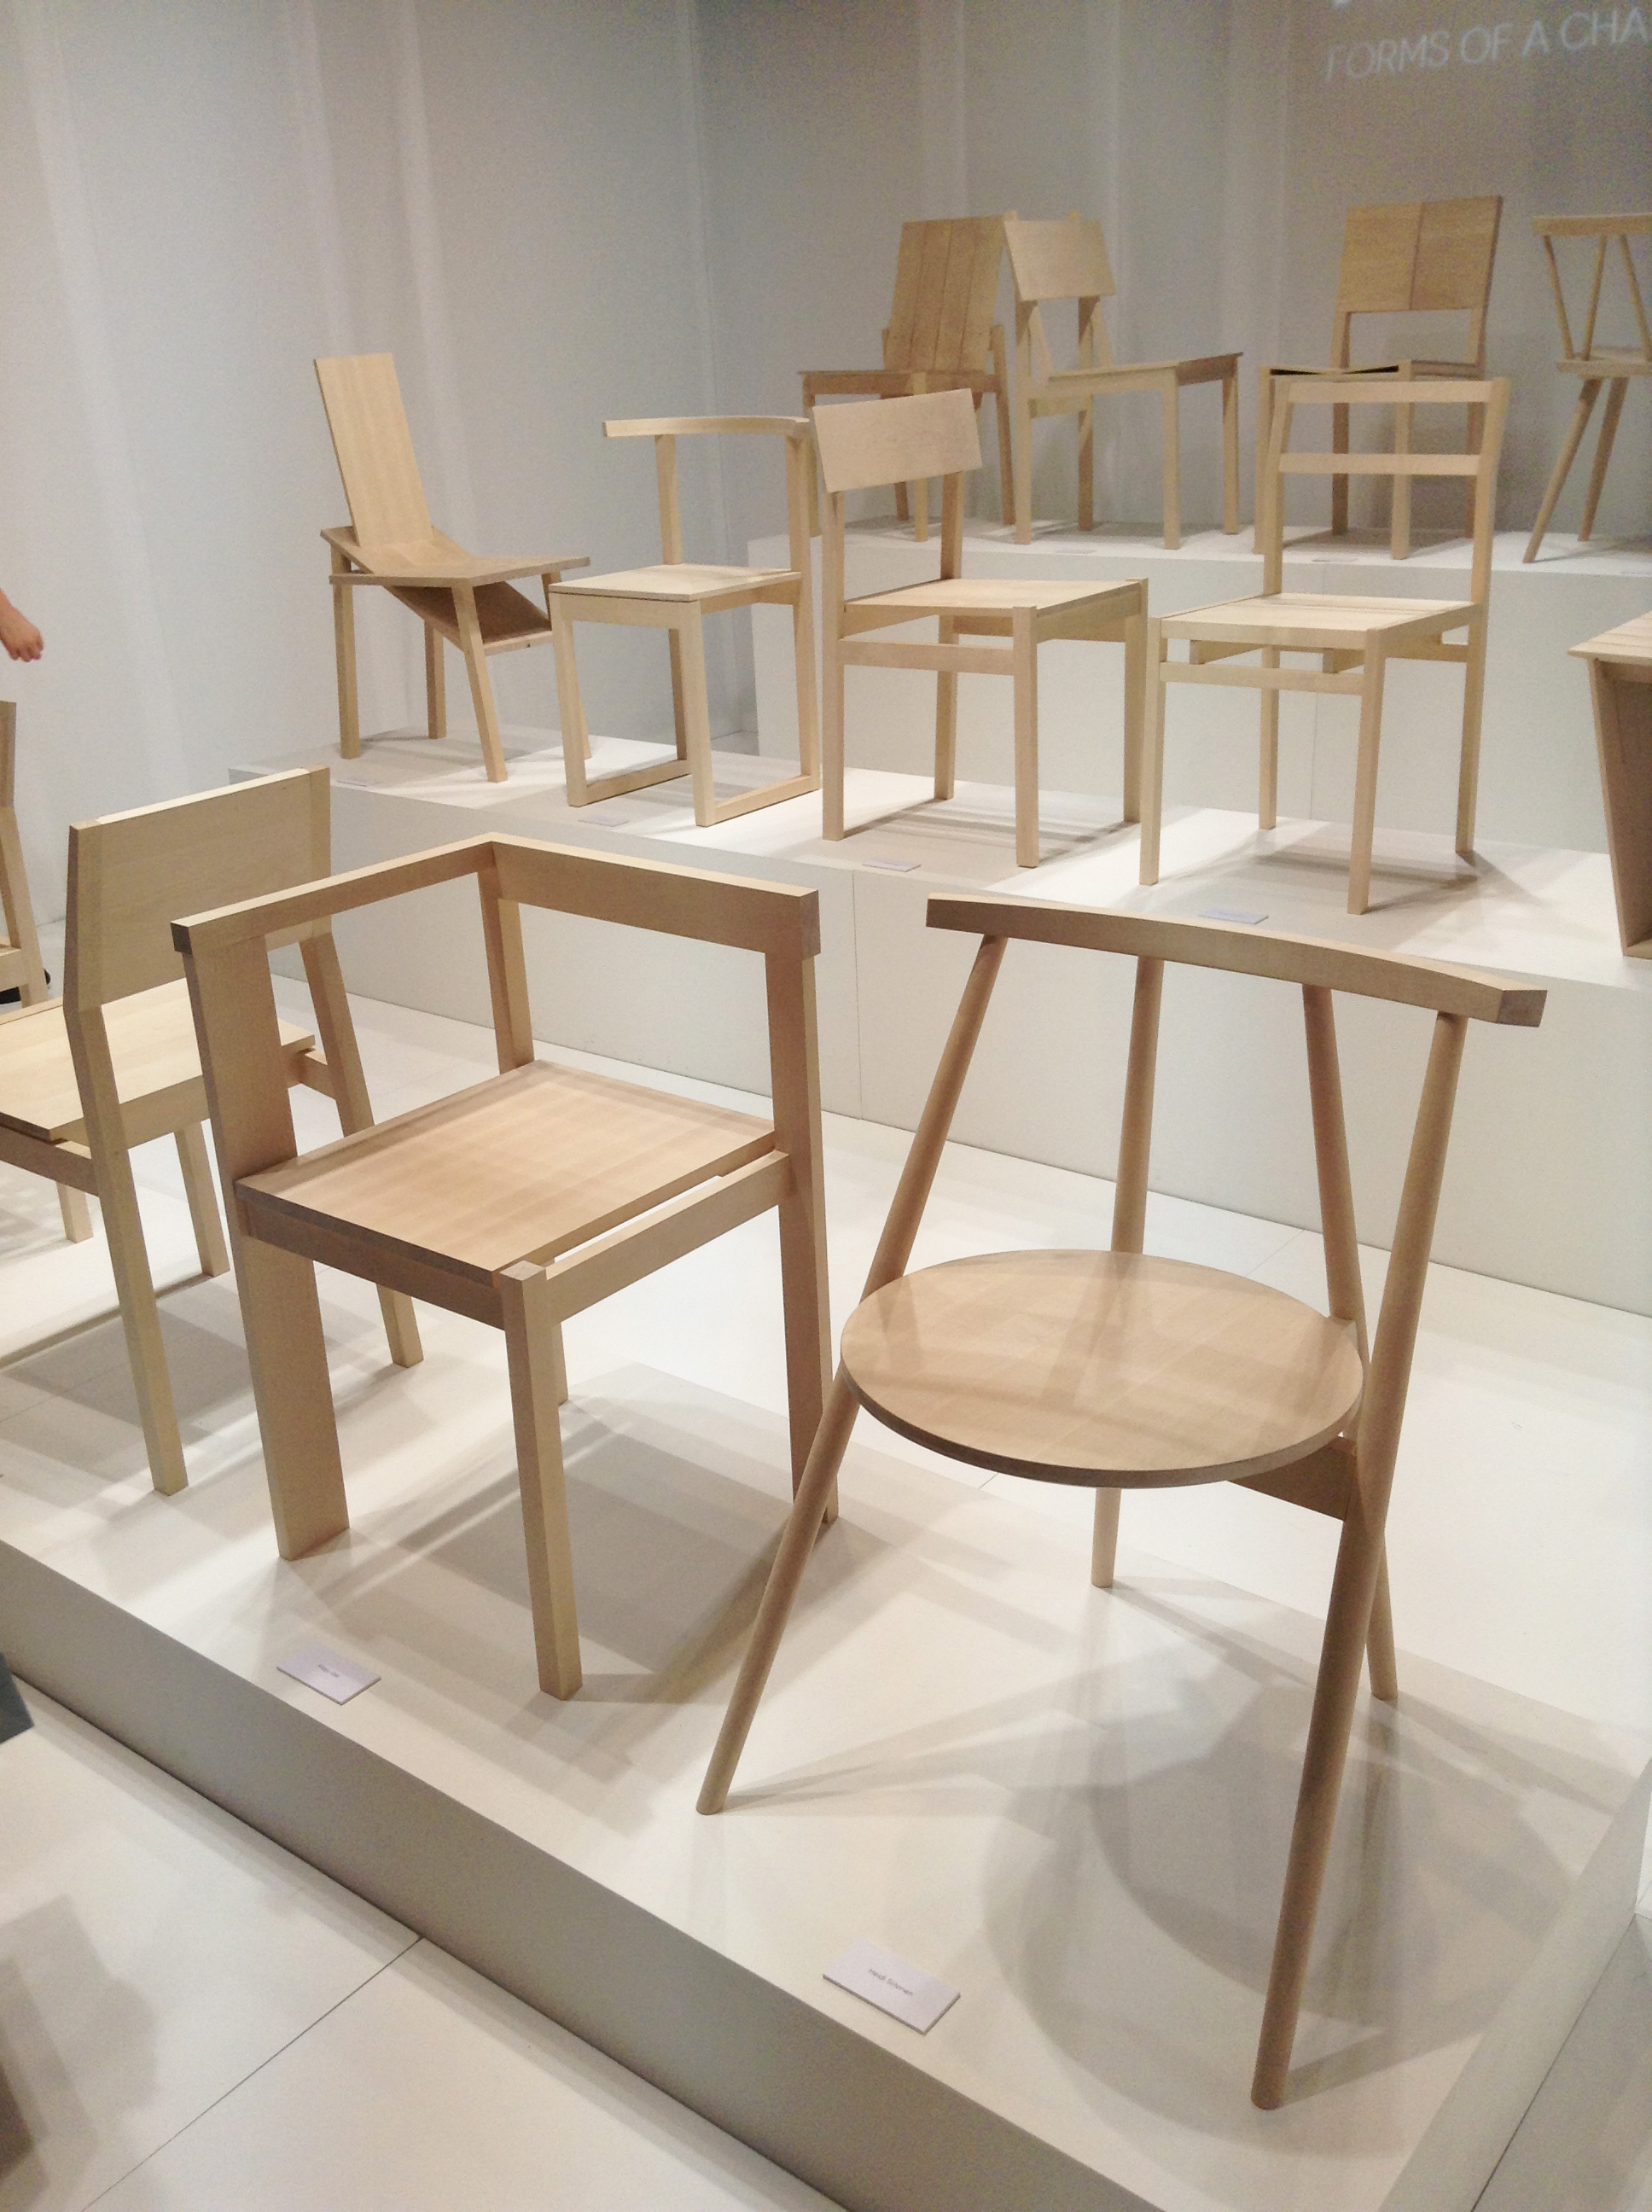 chair design studio bistro style dining chairs stockholm furniture fair  scandinavian